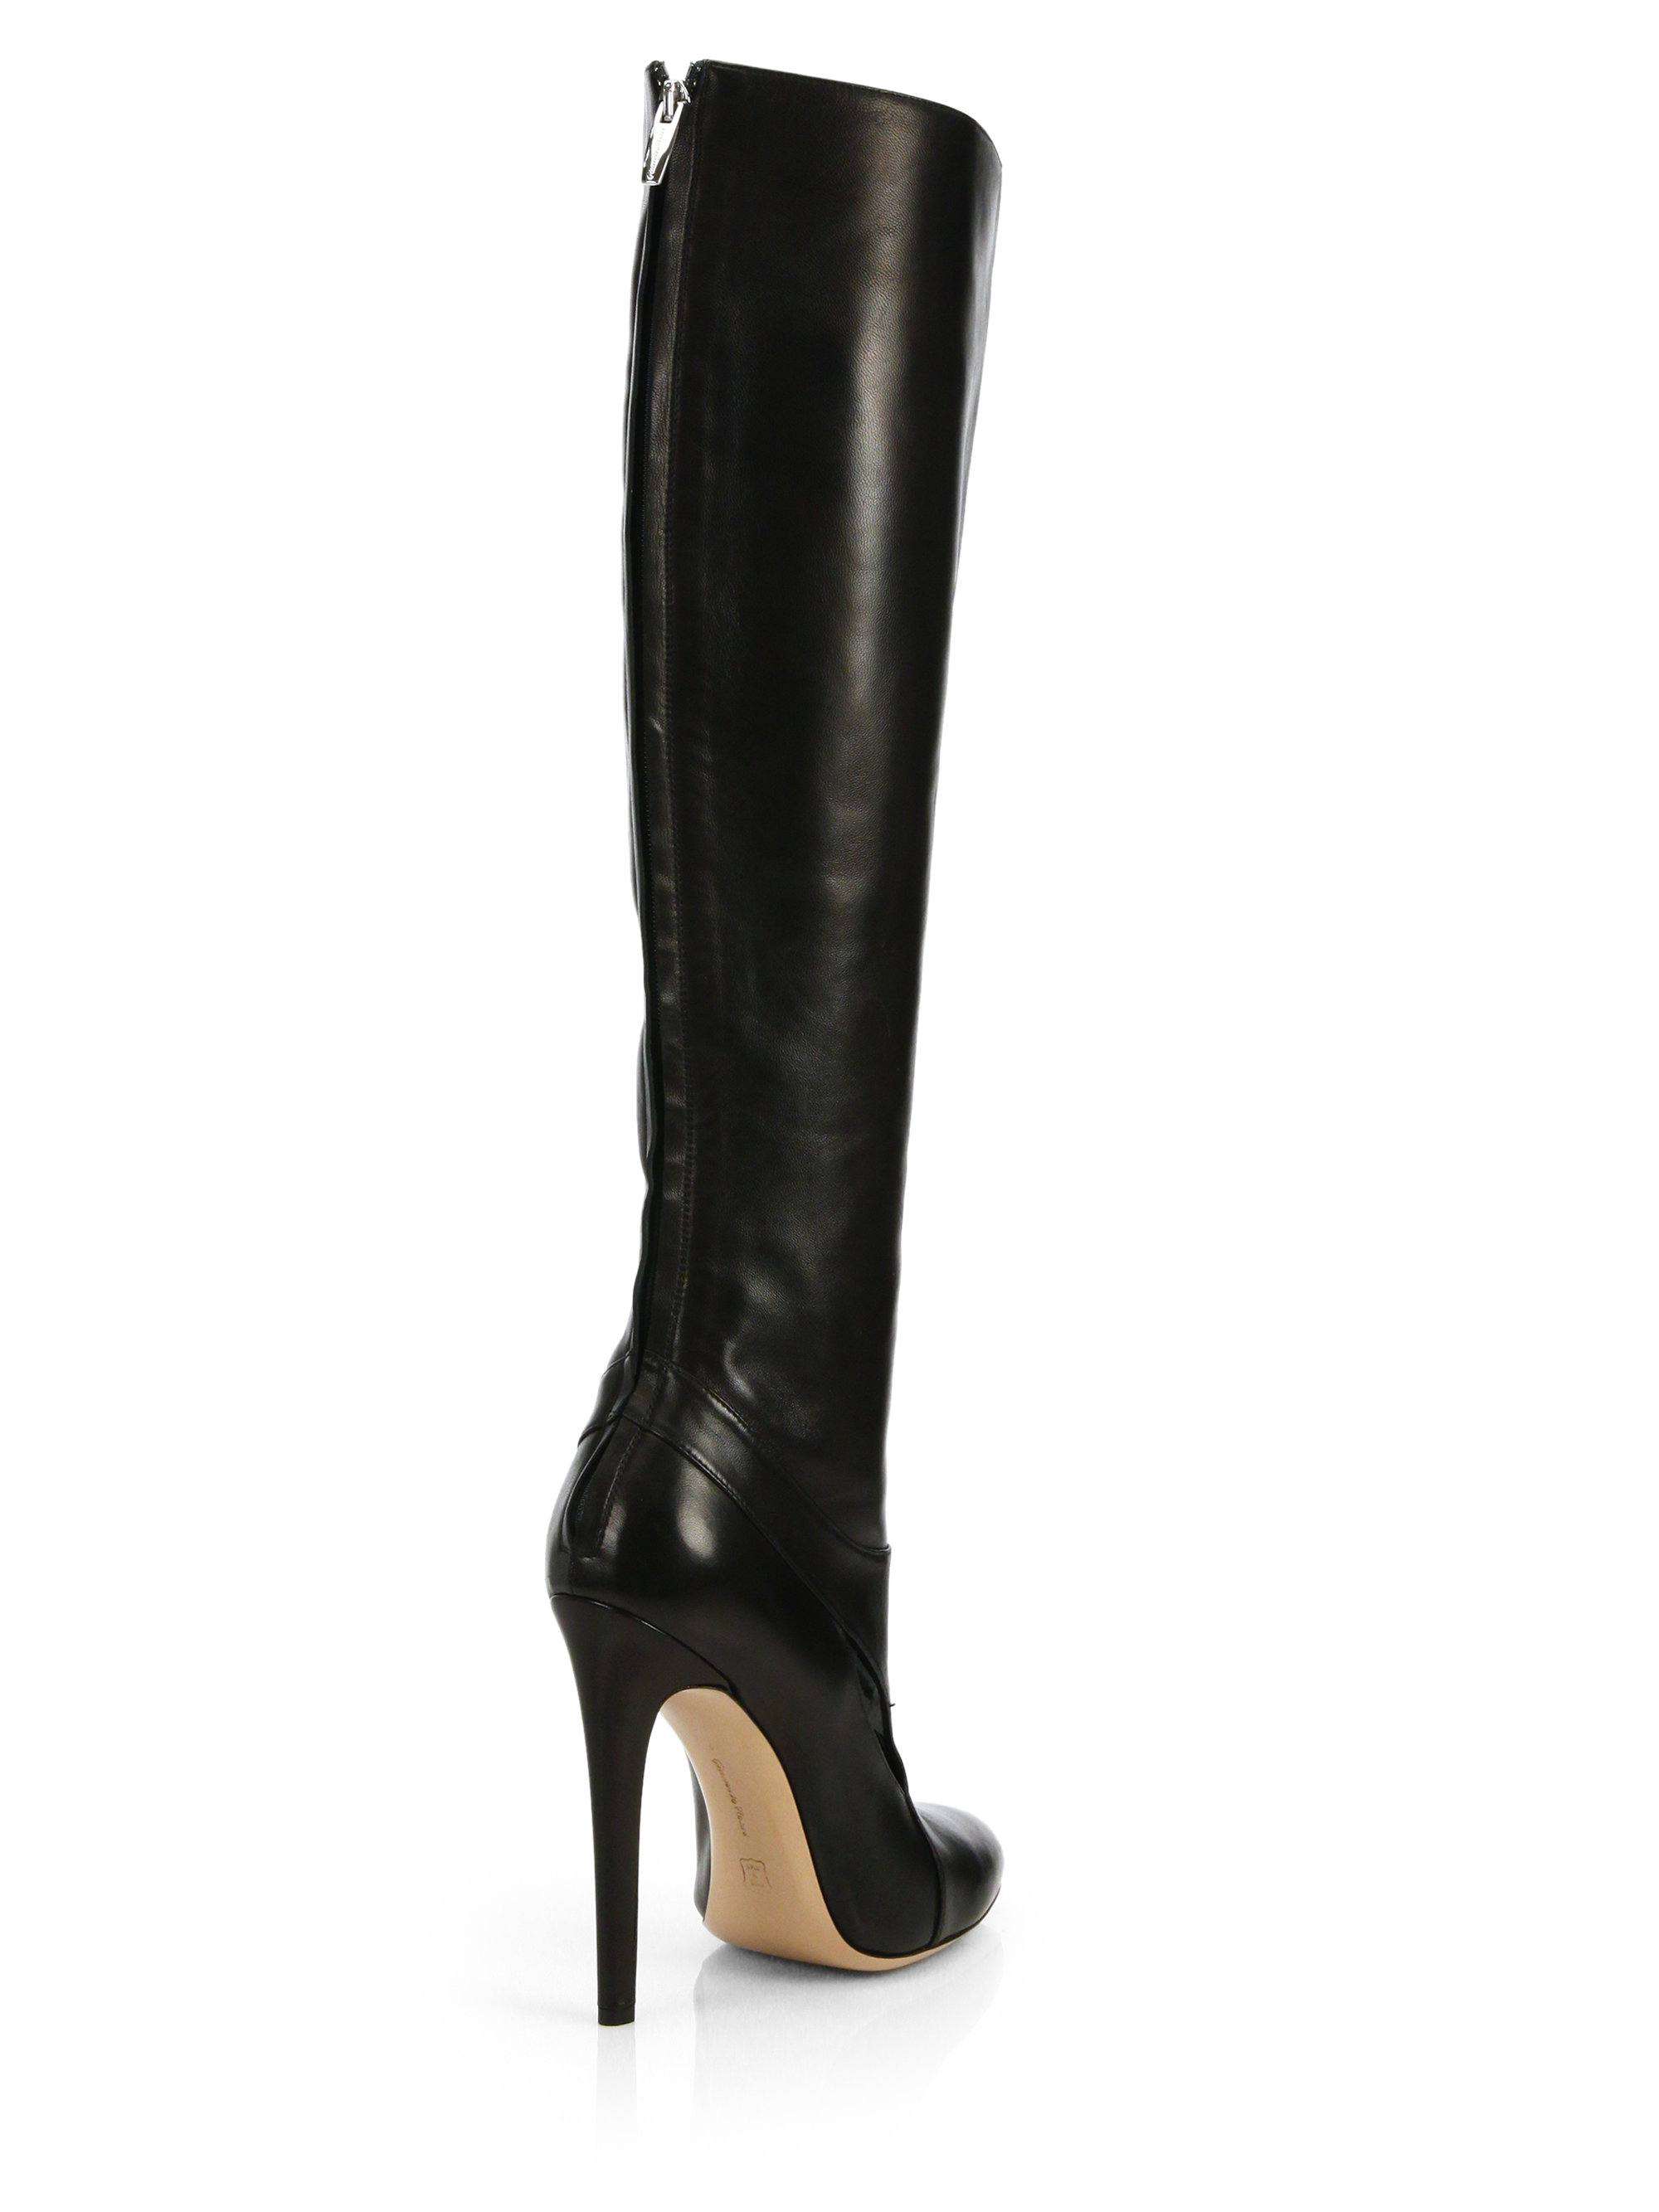 Altuzarra Cutout Leather Knee-High Boots in Black | Lyst